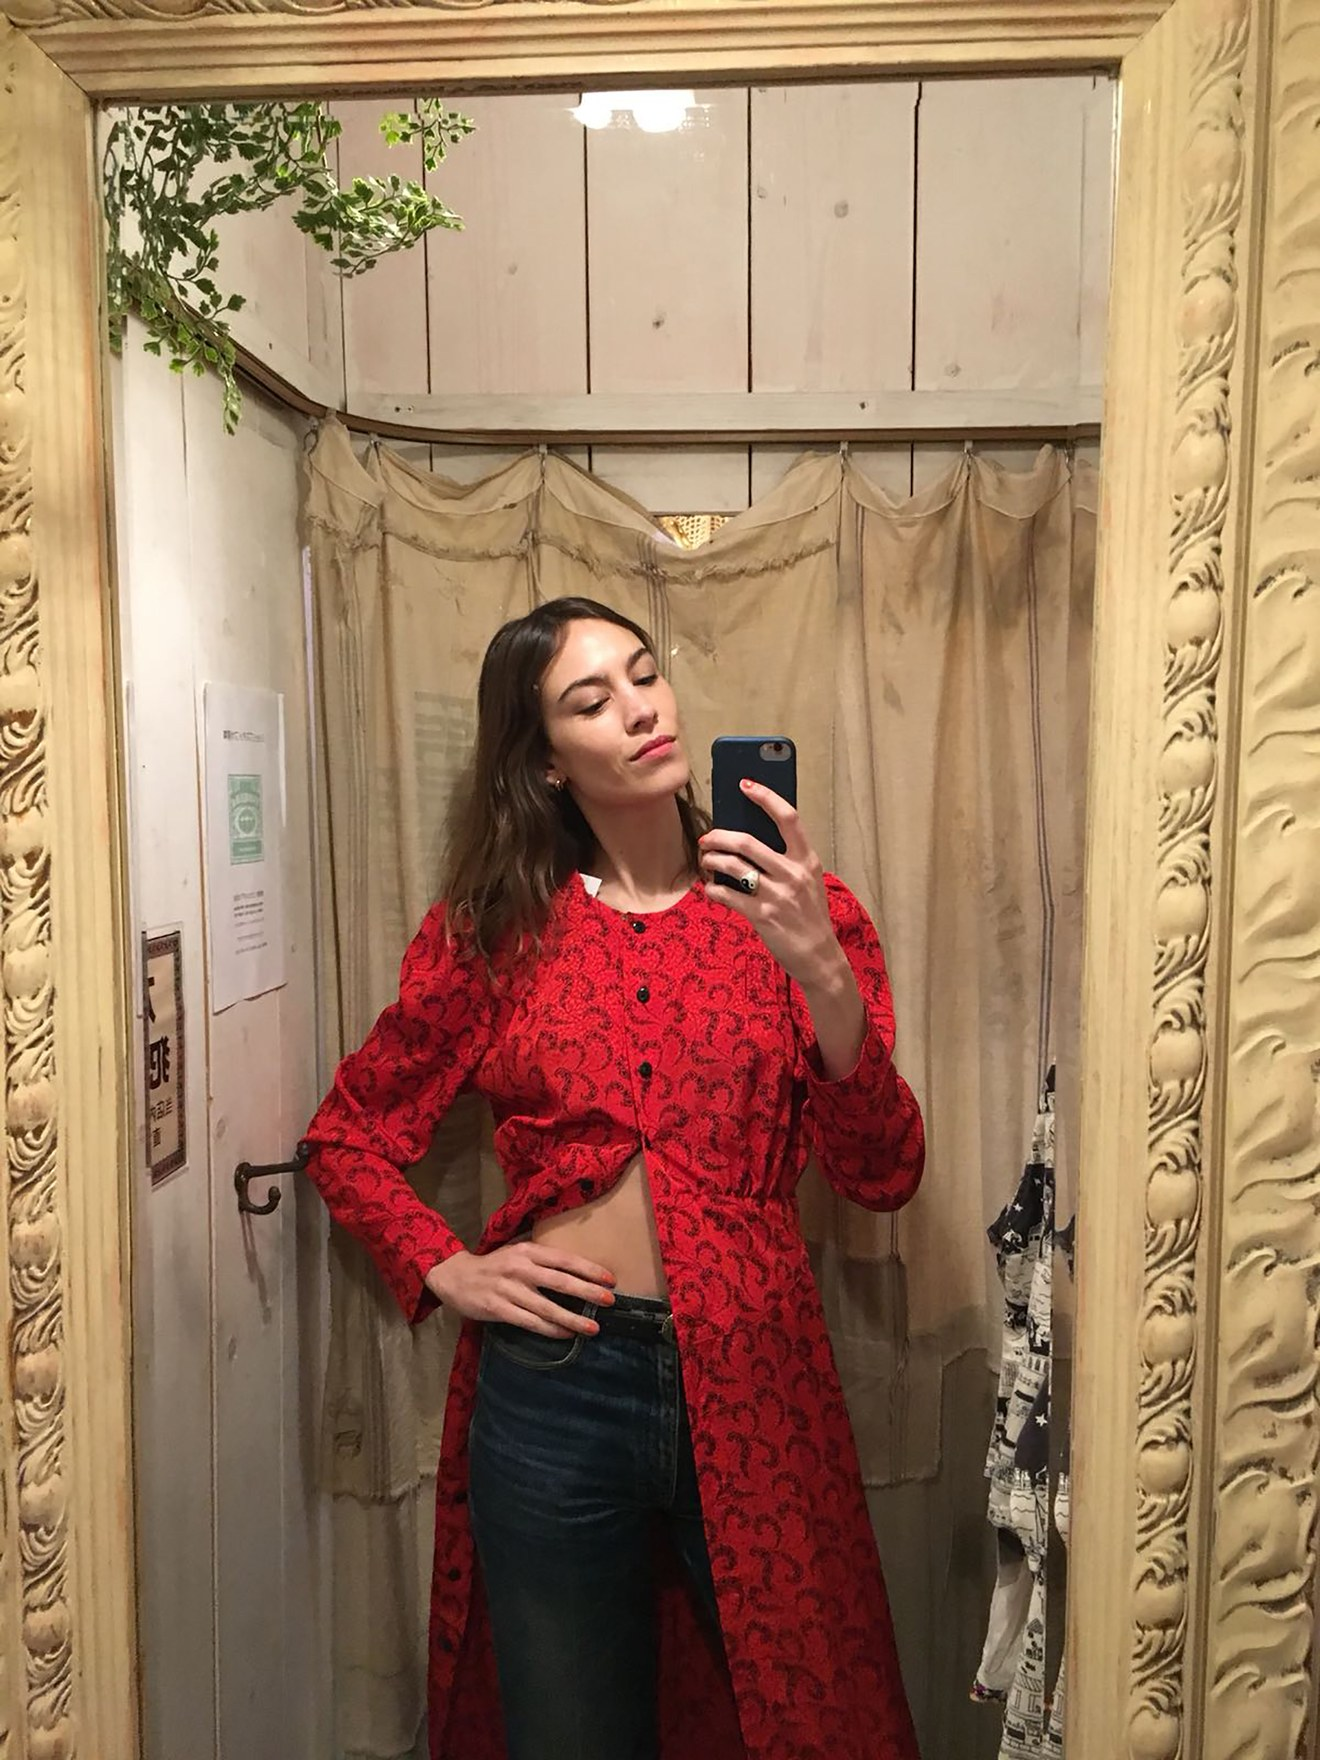 b48458c23d0 Finding Vintage Concert Tees And Cheesecloth Shirts In Tokyo With Alexa  Chung